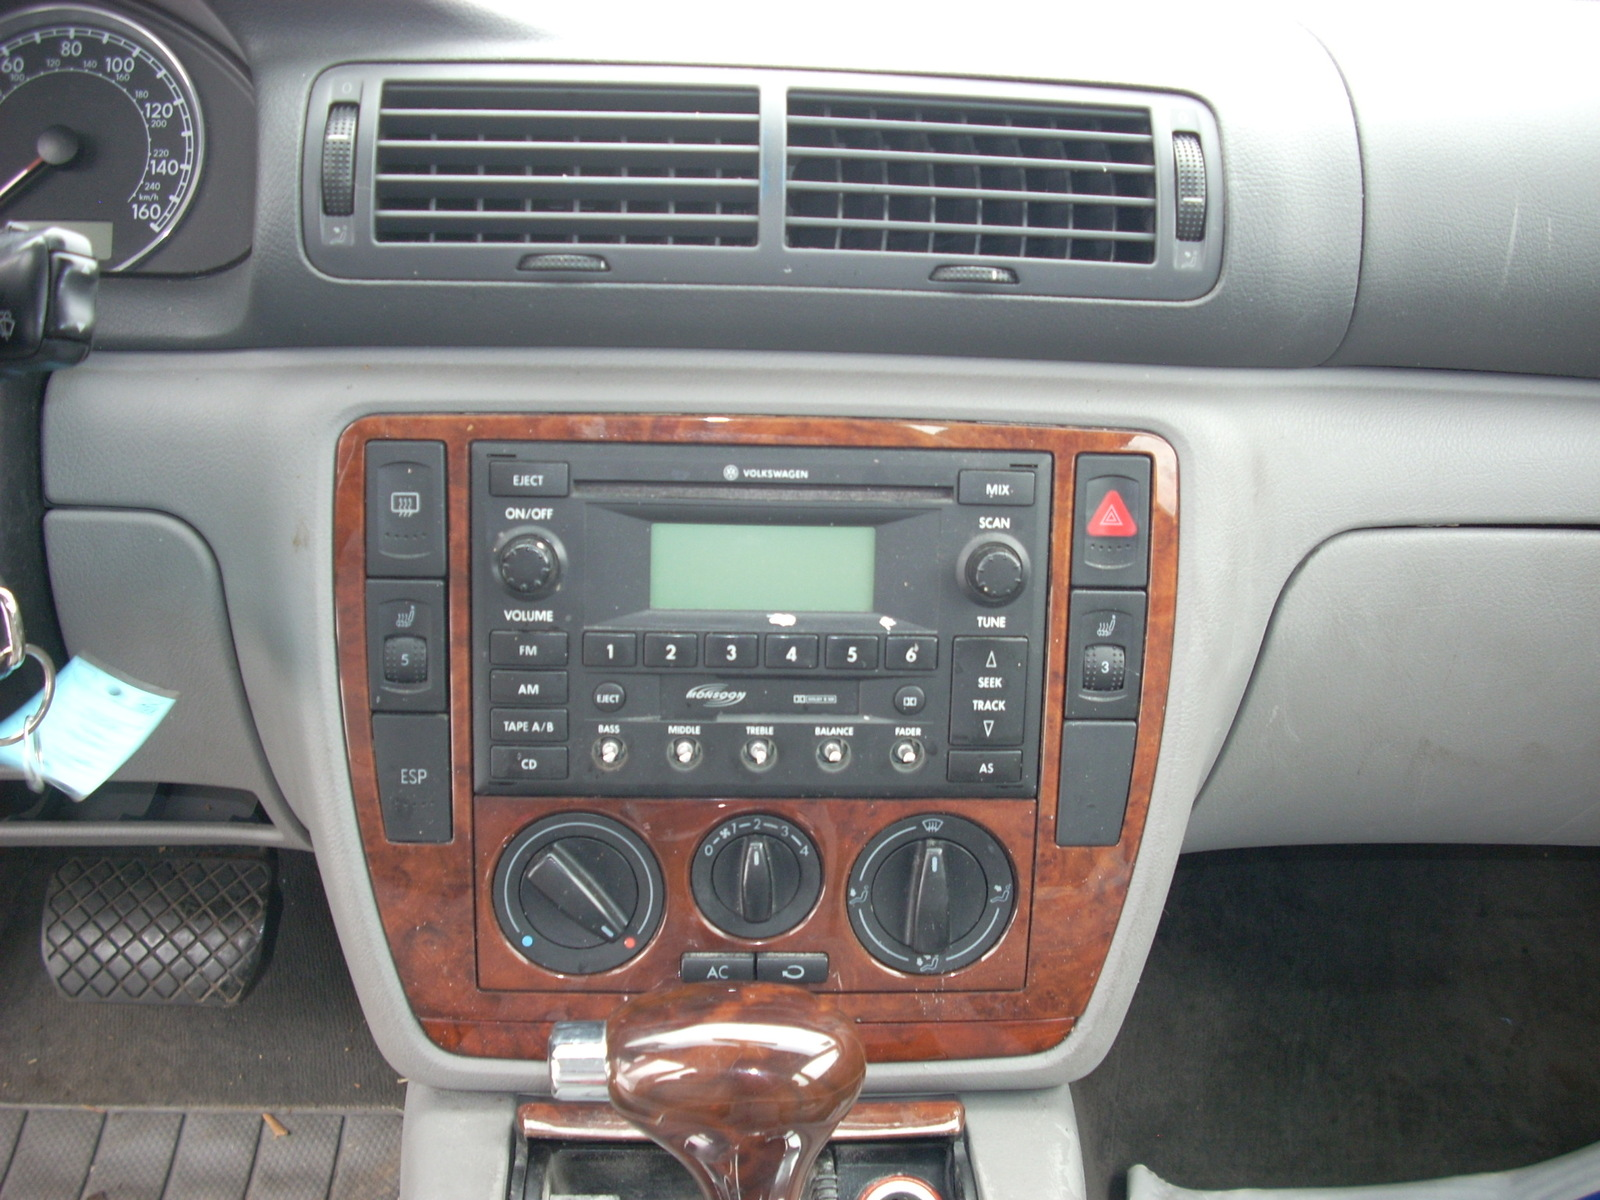 2004 VW PASSAT TEMPERATURE CONTROL